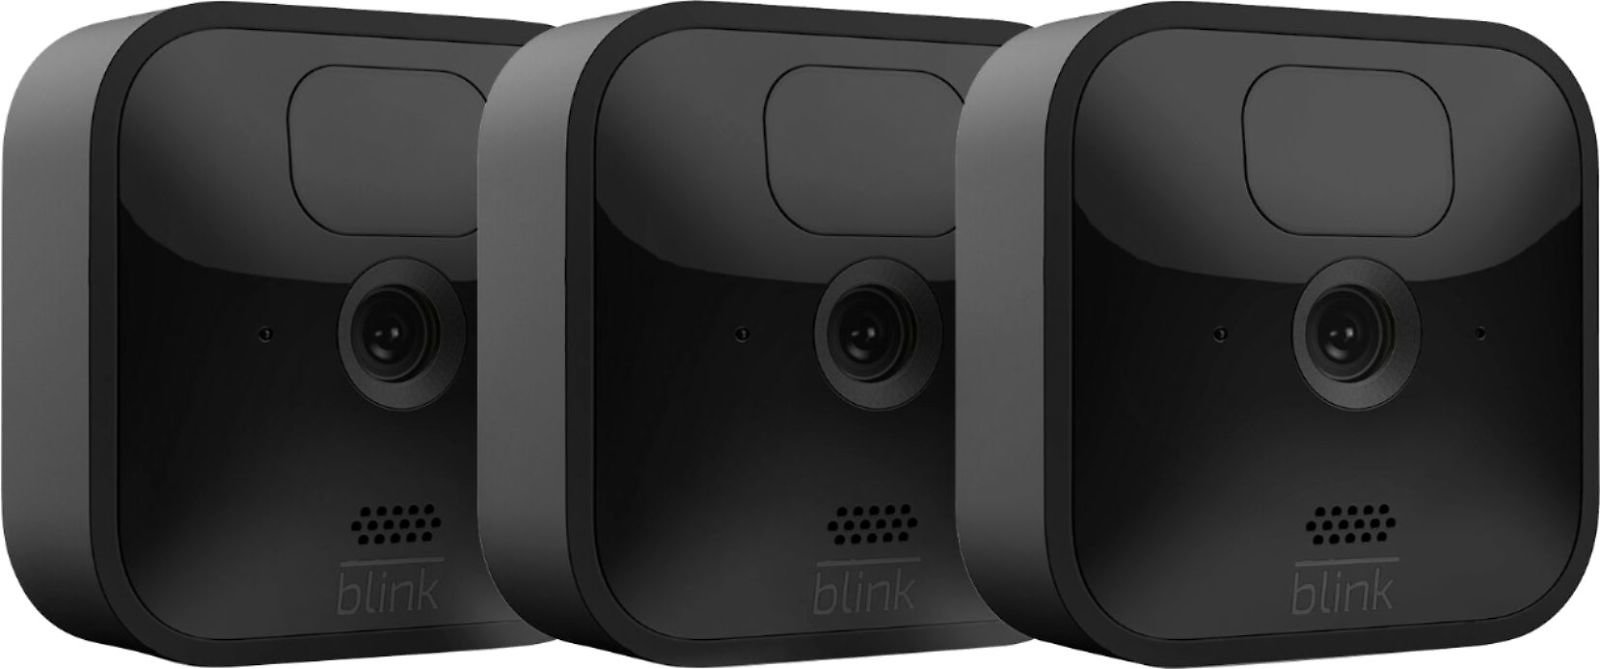 Blink Outdoor 3 Cam Kit– Wireless, Weather-resistant HD Security Camera with 2-year Battery Life and Motion Detection B086DKSHQ4